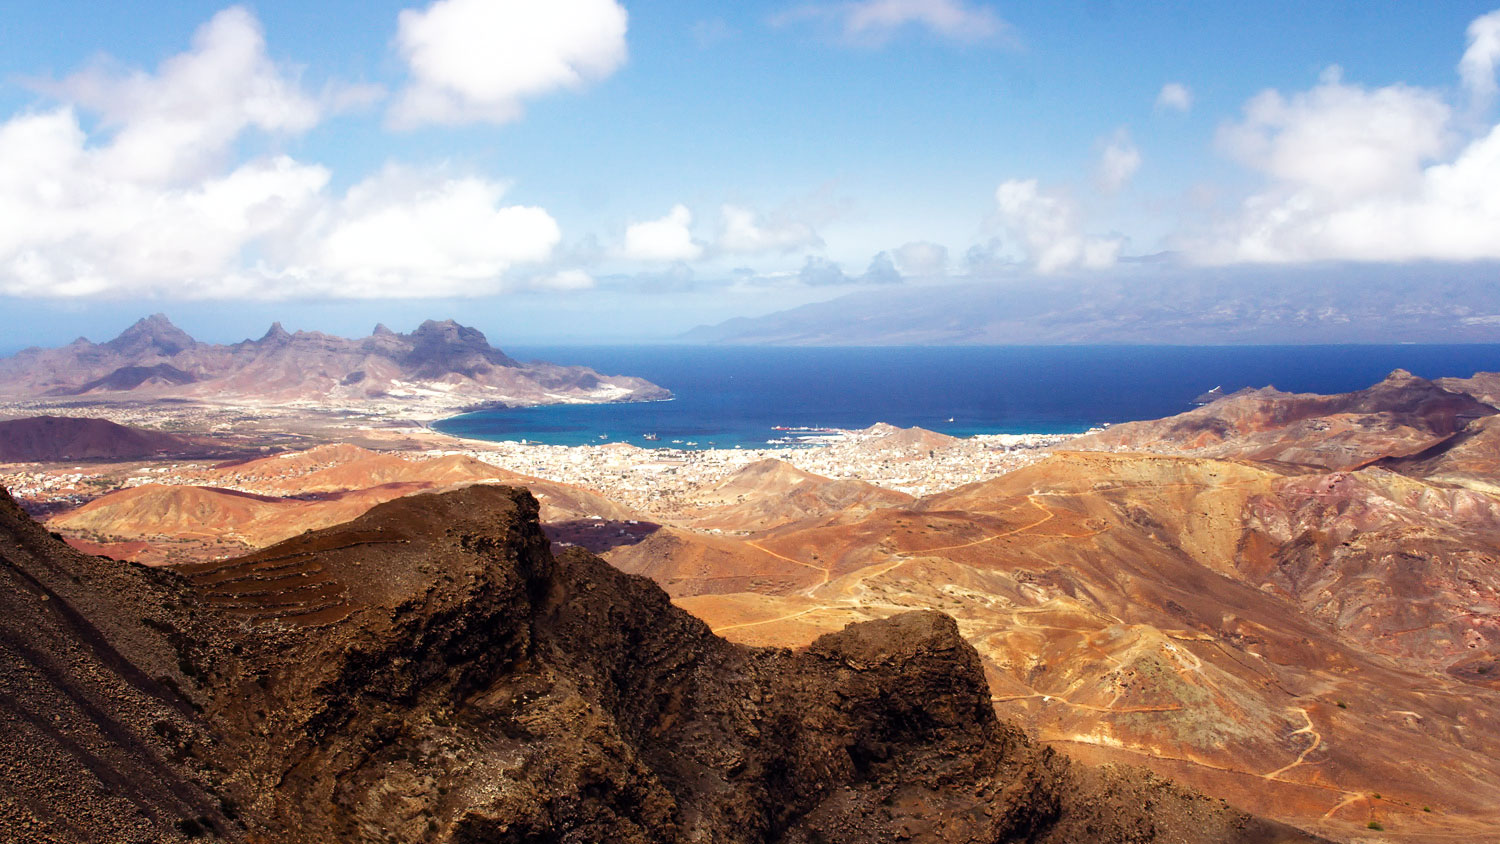 View of Mindelo, Cabo Verde from Monte Verde